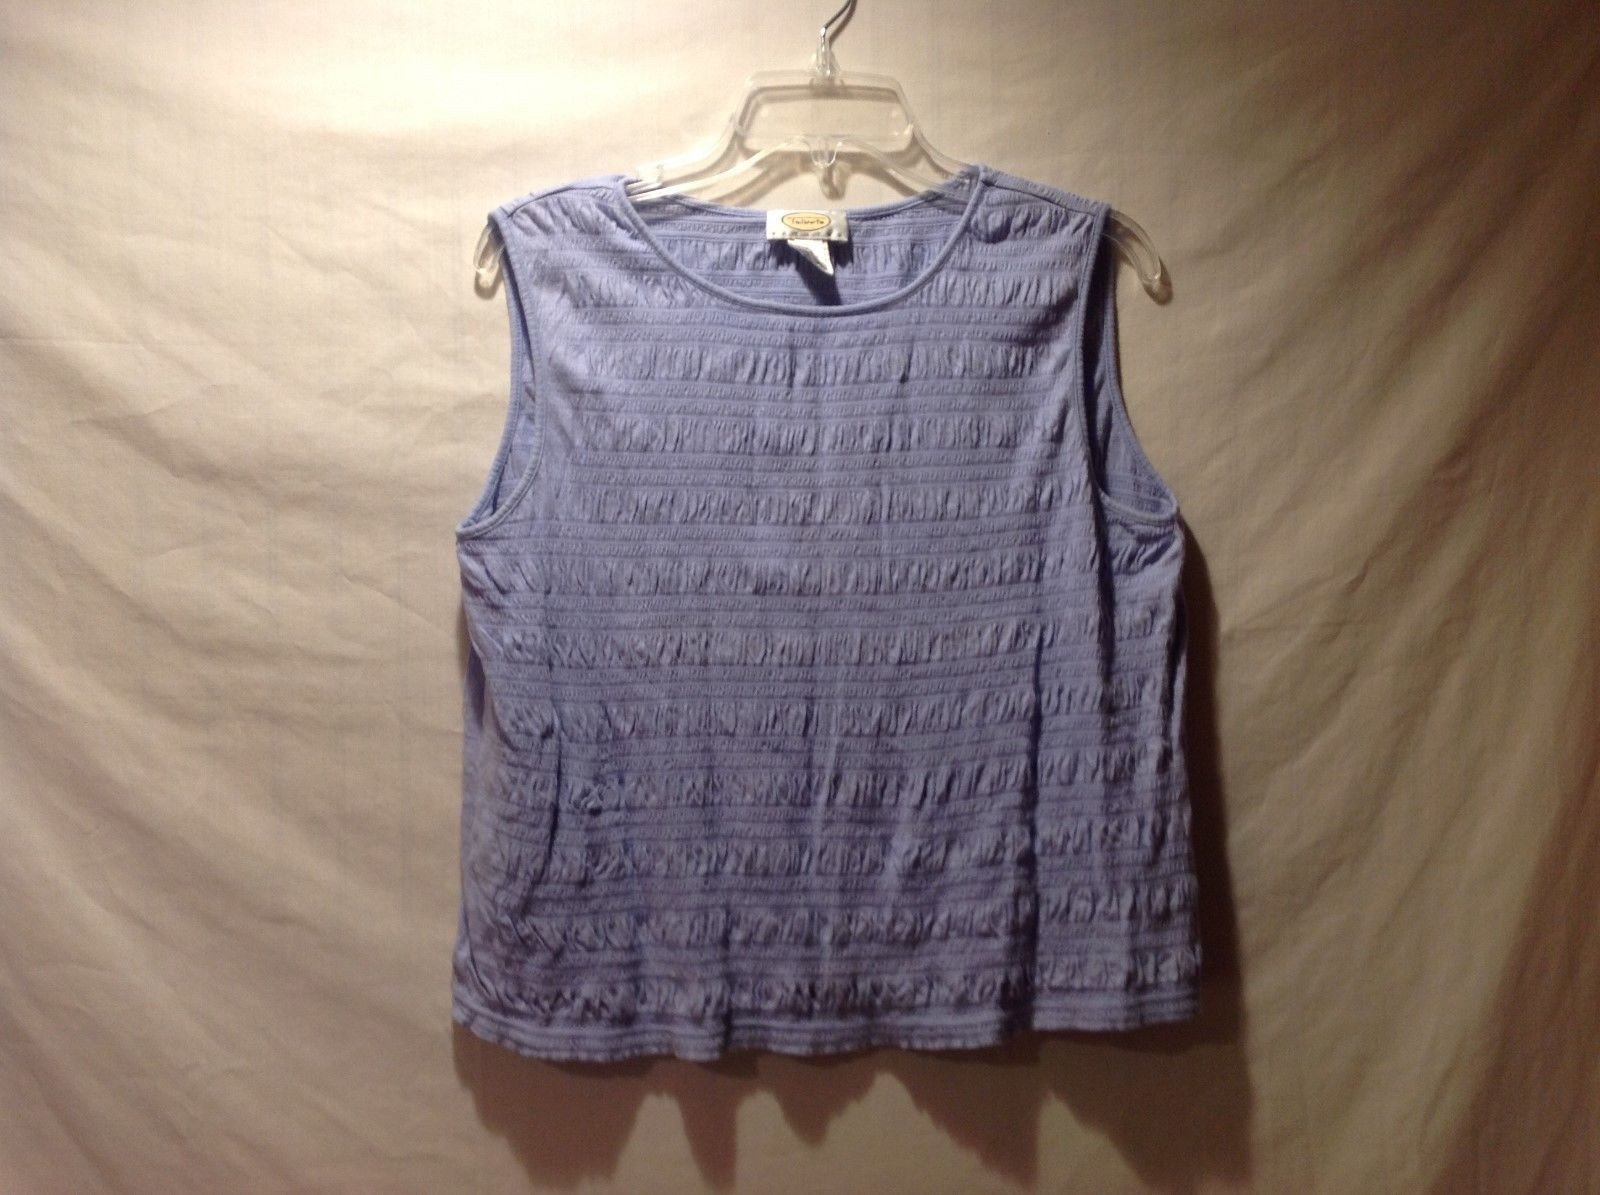 Primary image for Talbots Lavender Purple Sleeveless Blouse/Tank Size Petite Large